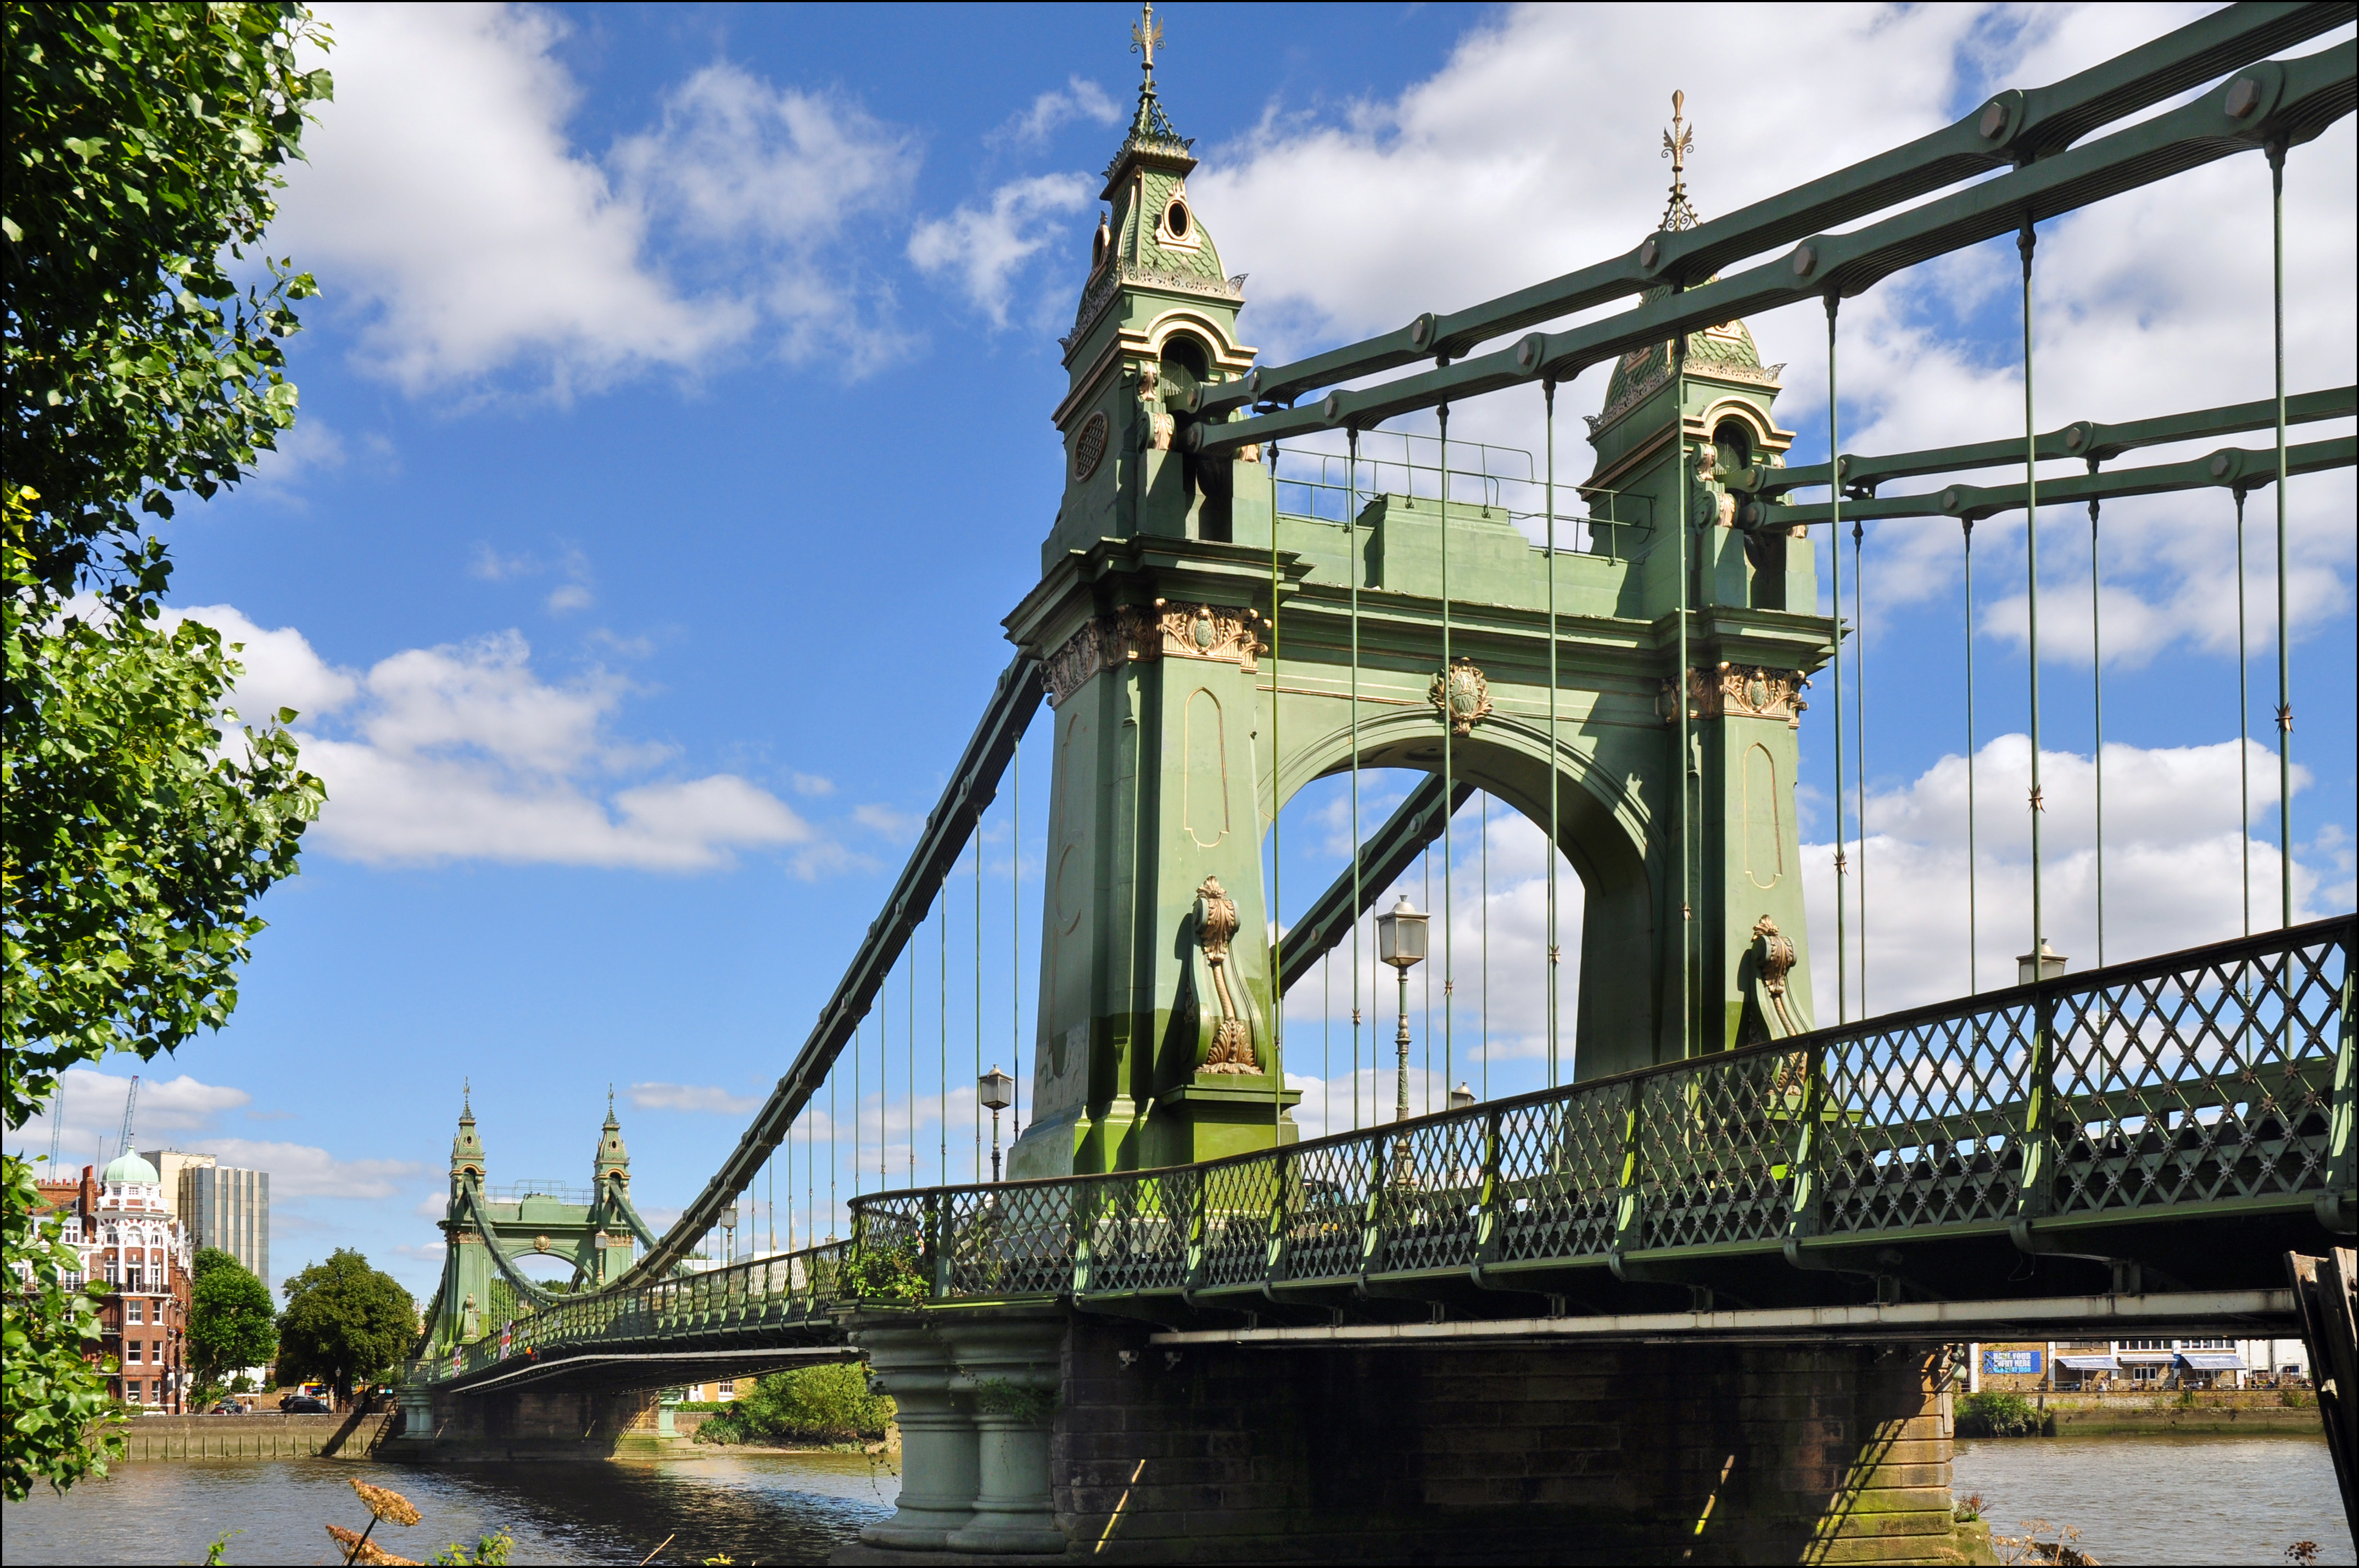 hammersmith_bridge_south.jpg